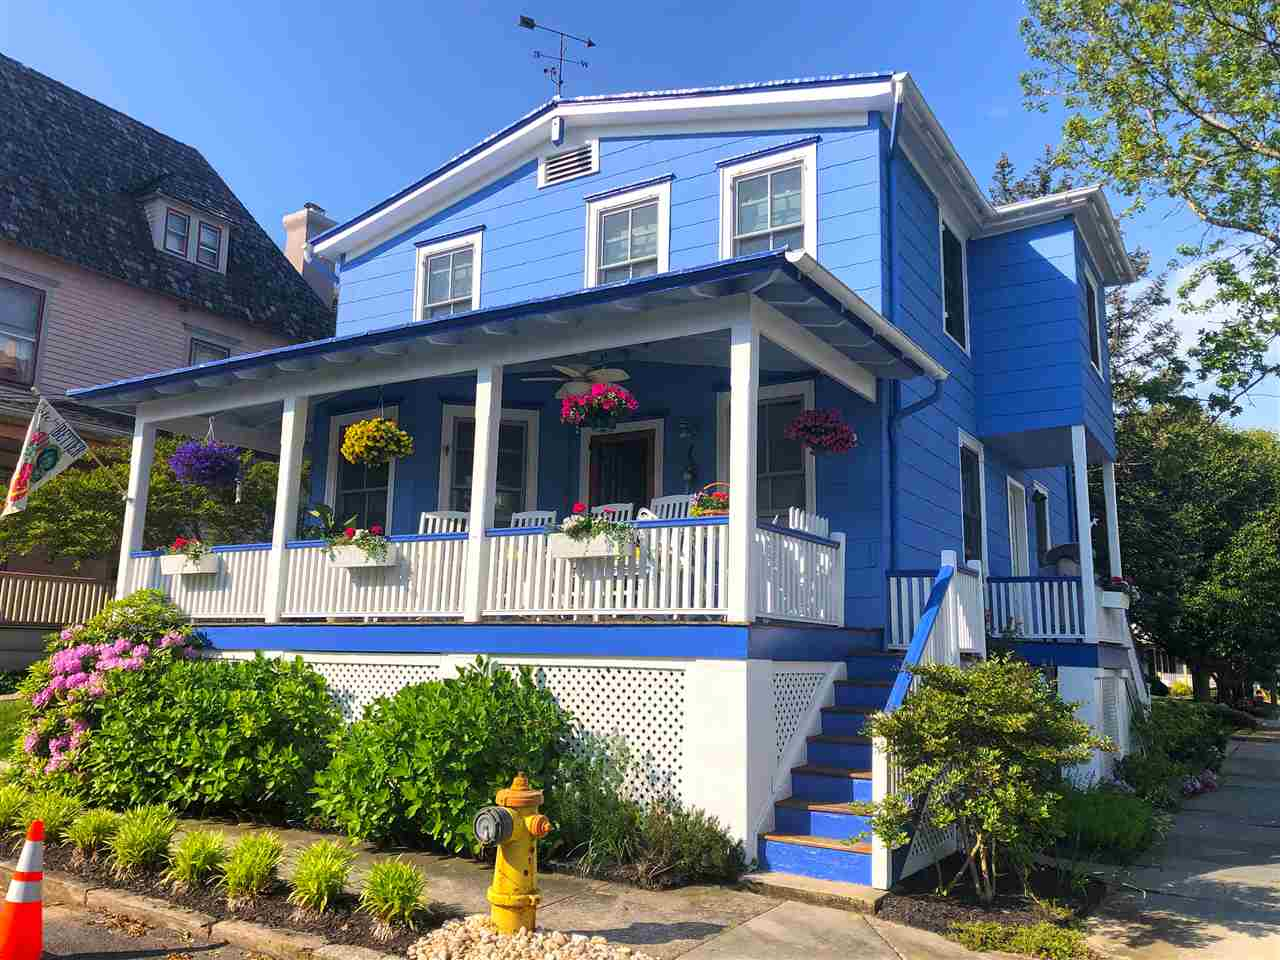 212 Congress Street - Cape May